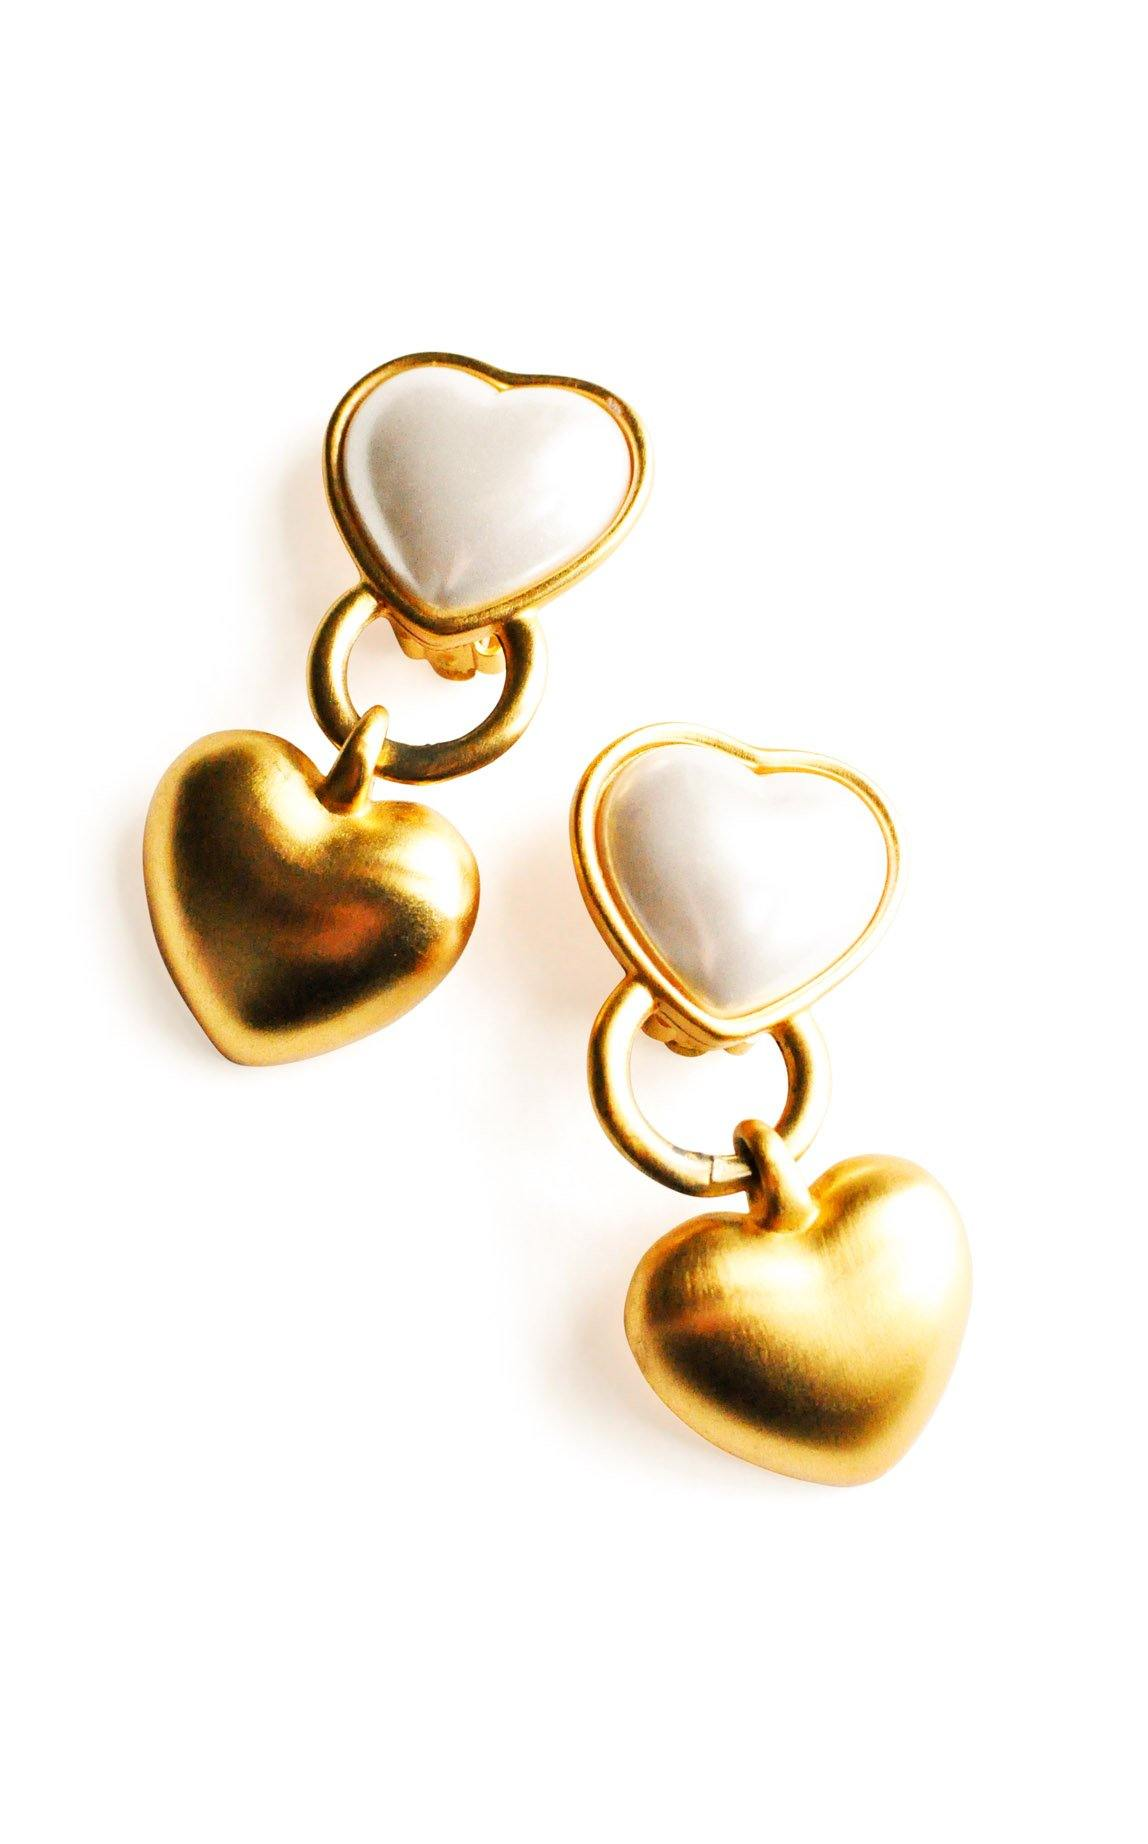 Pearl Heart Clip-on Earrings from Sweet & Spark